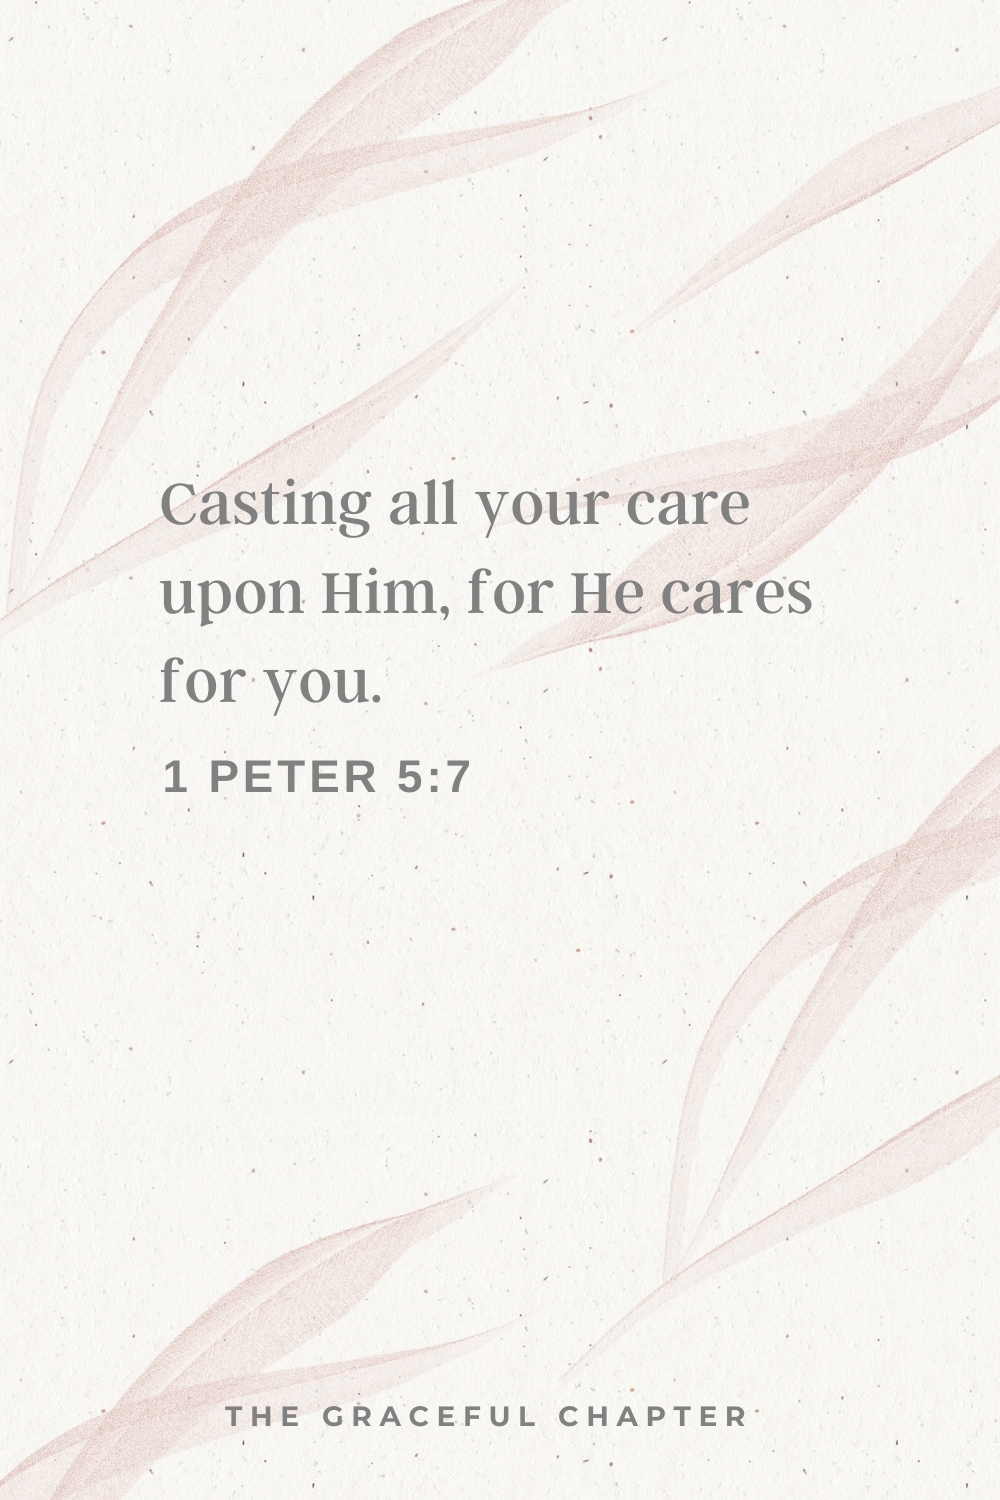 Casting all your care upon Him, for He cares for you. 1 Peter 5:7